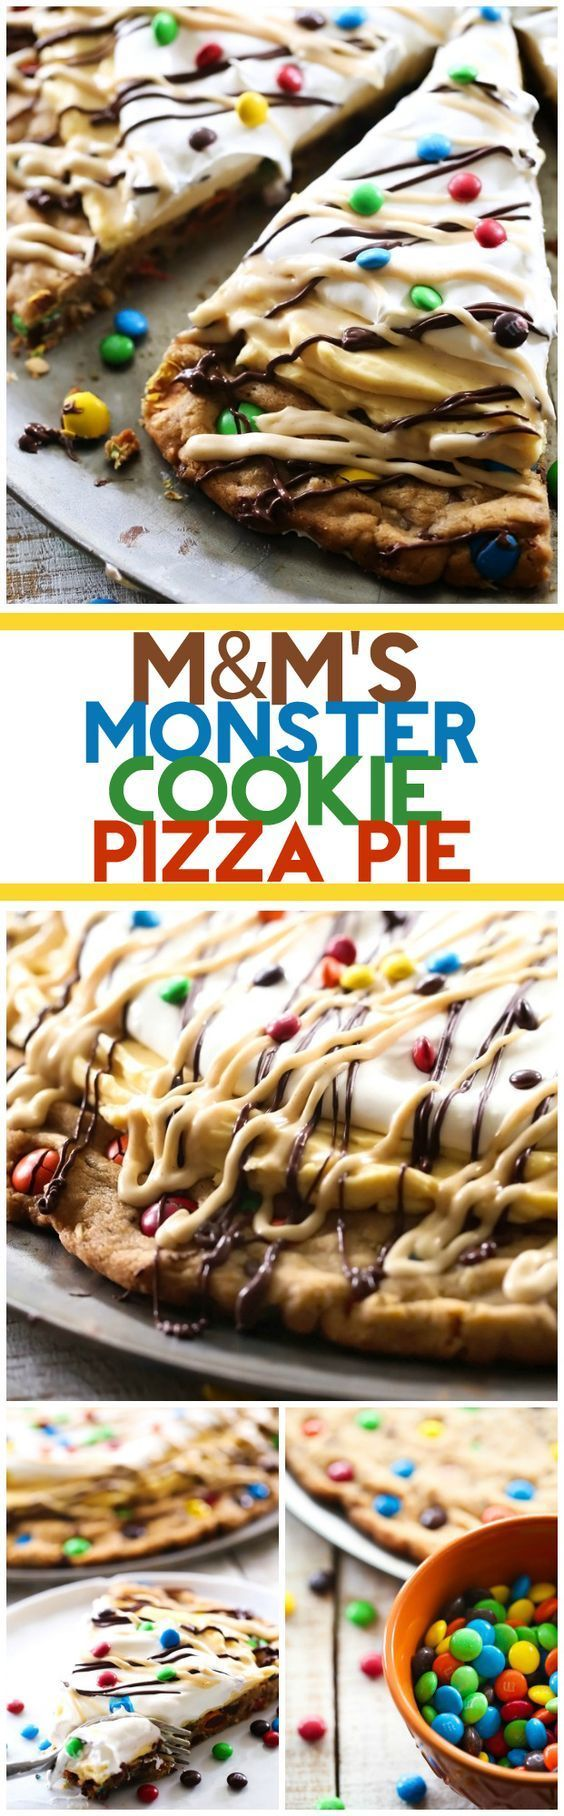 This MandM'S Monster Cookie Pizza Pie is the ultimate dessert! It is peanut butter chocolate heaven!